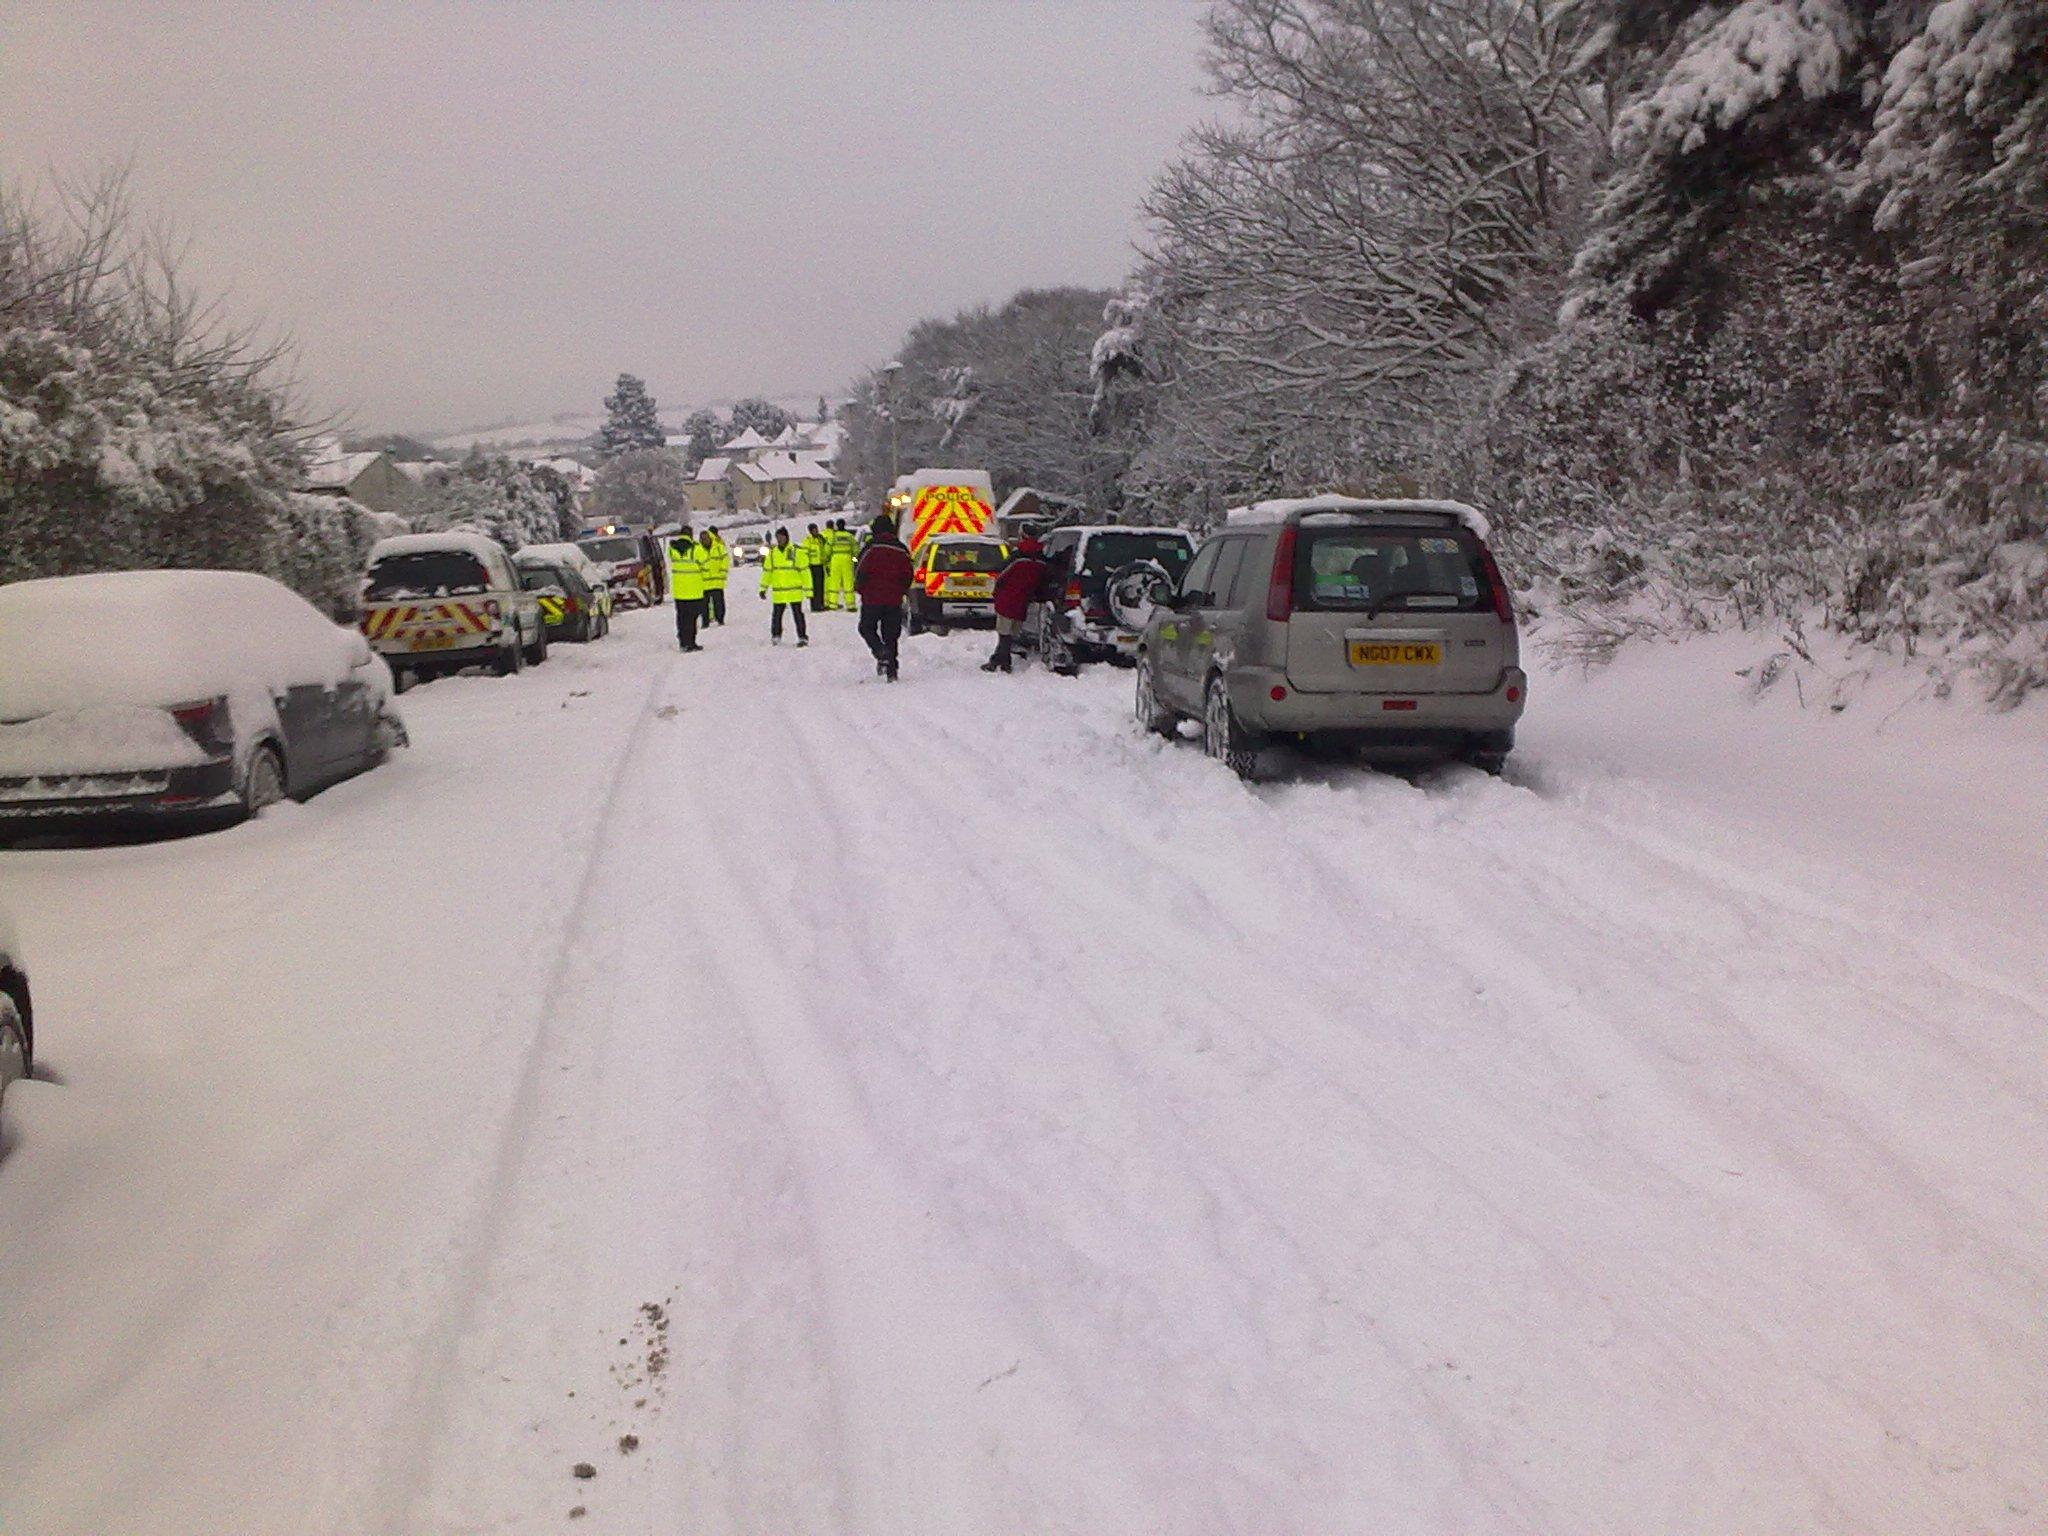 stranded motorists due to the snow on Haldon Hill in 2010